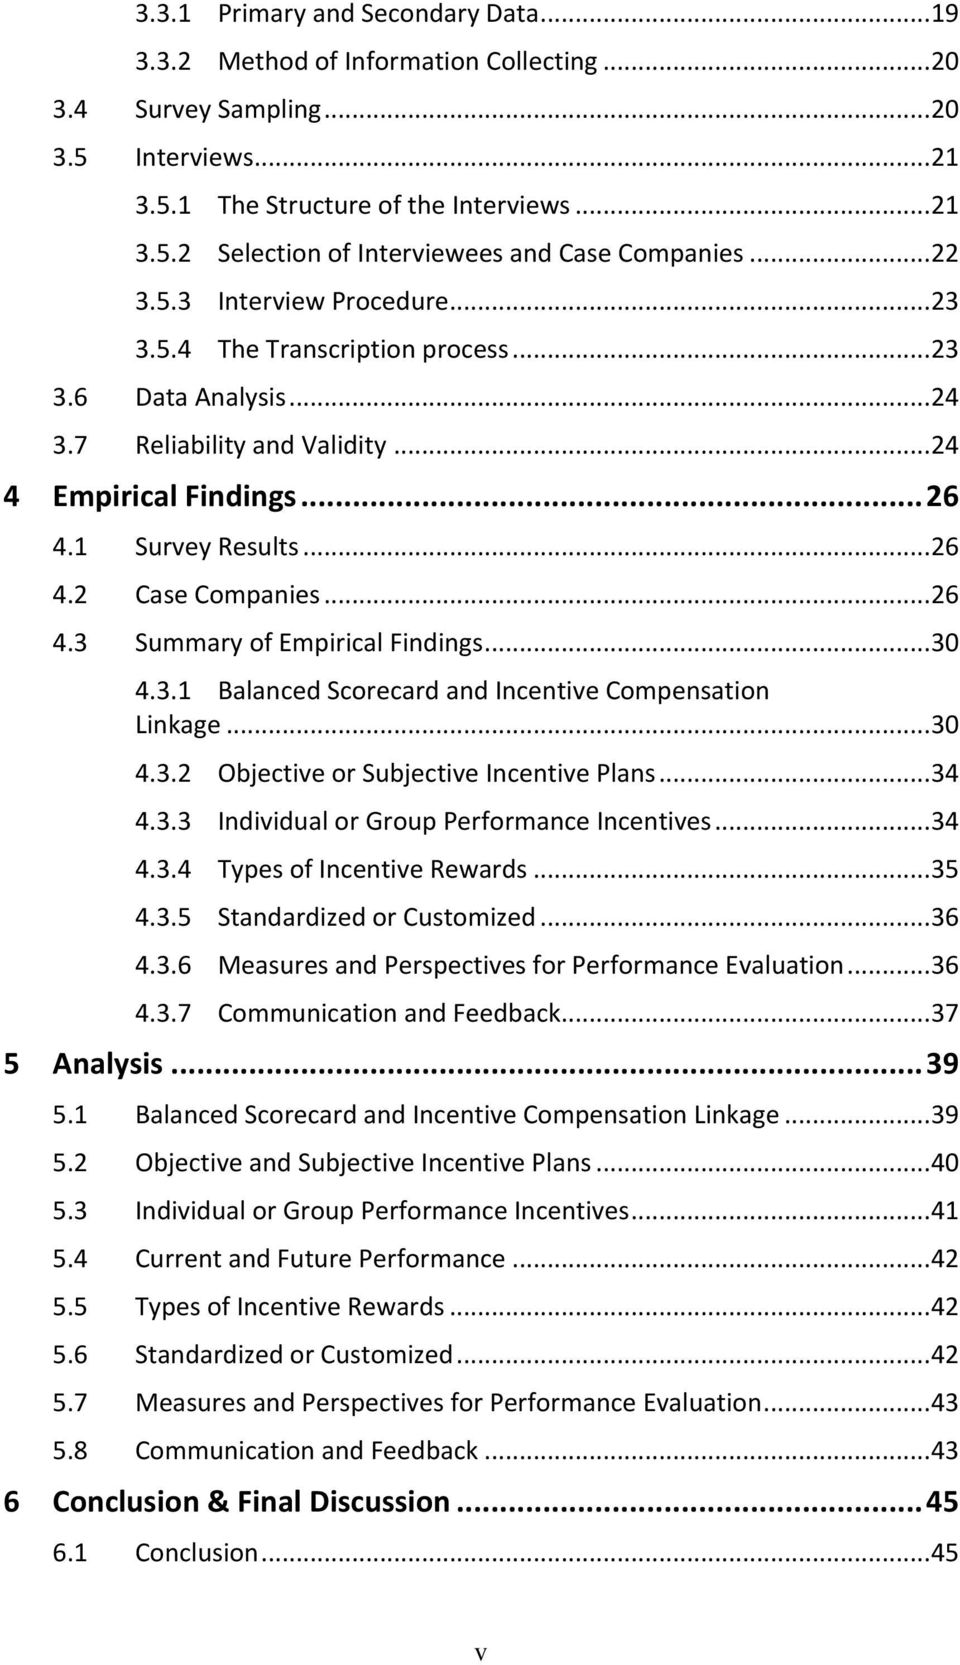 .. 26 4.3 Summary of Empirical Findings... 30 4.3.1 Balanced Scorecard and Incentive Compensation Linkage... 30 4.3.2 Objective or Subjective Incentive Plans... 34 4.3.3 Individual or Group Performance Incentives.